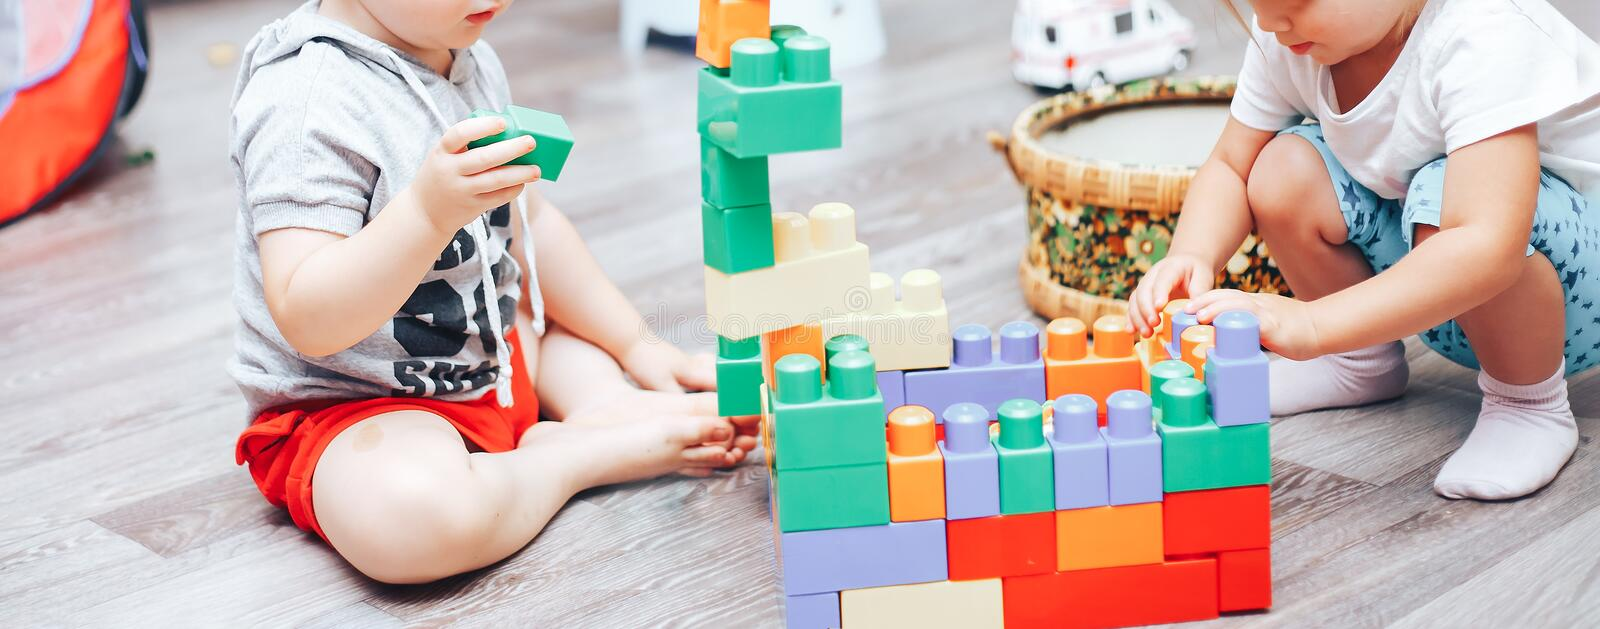 little boy and girl playing toys at home stock photos